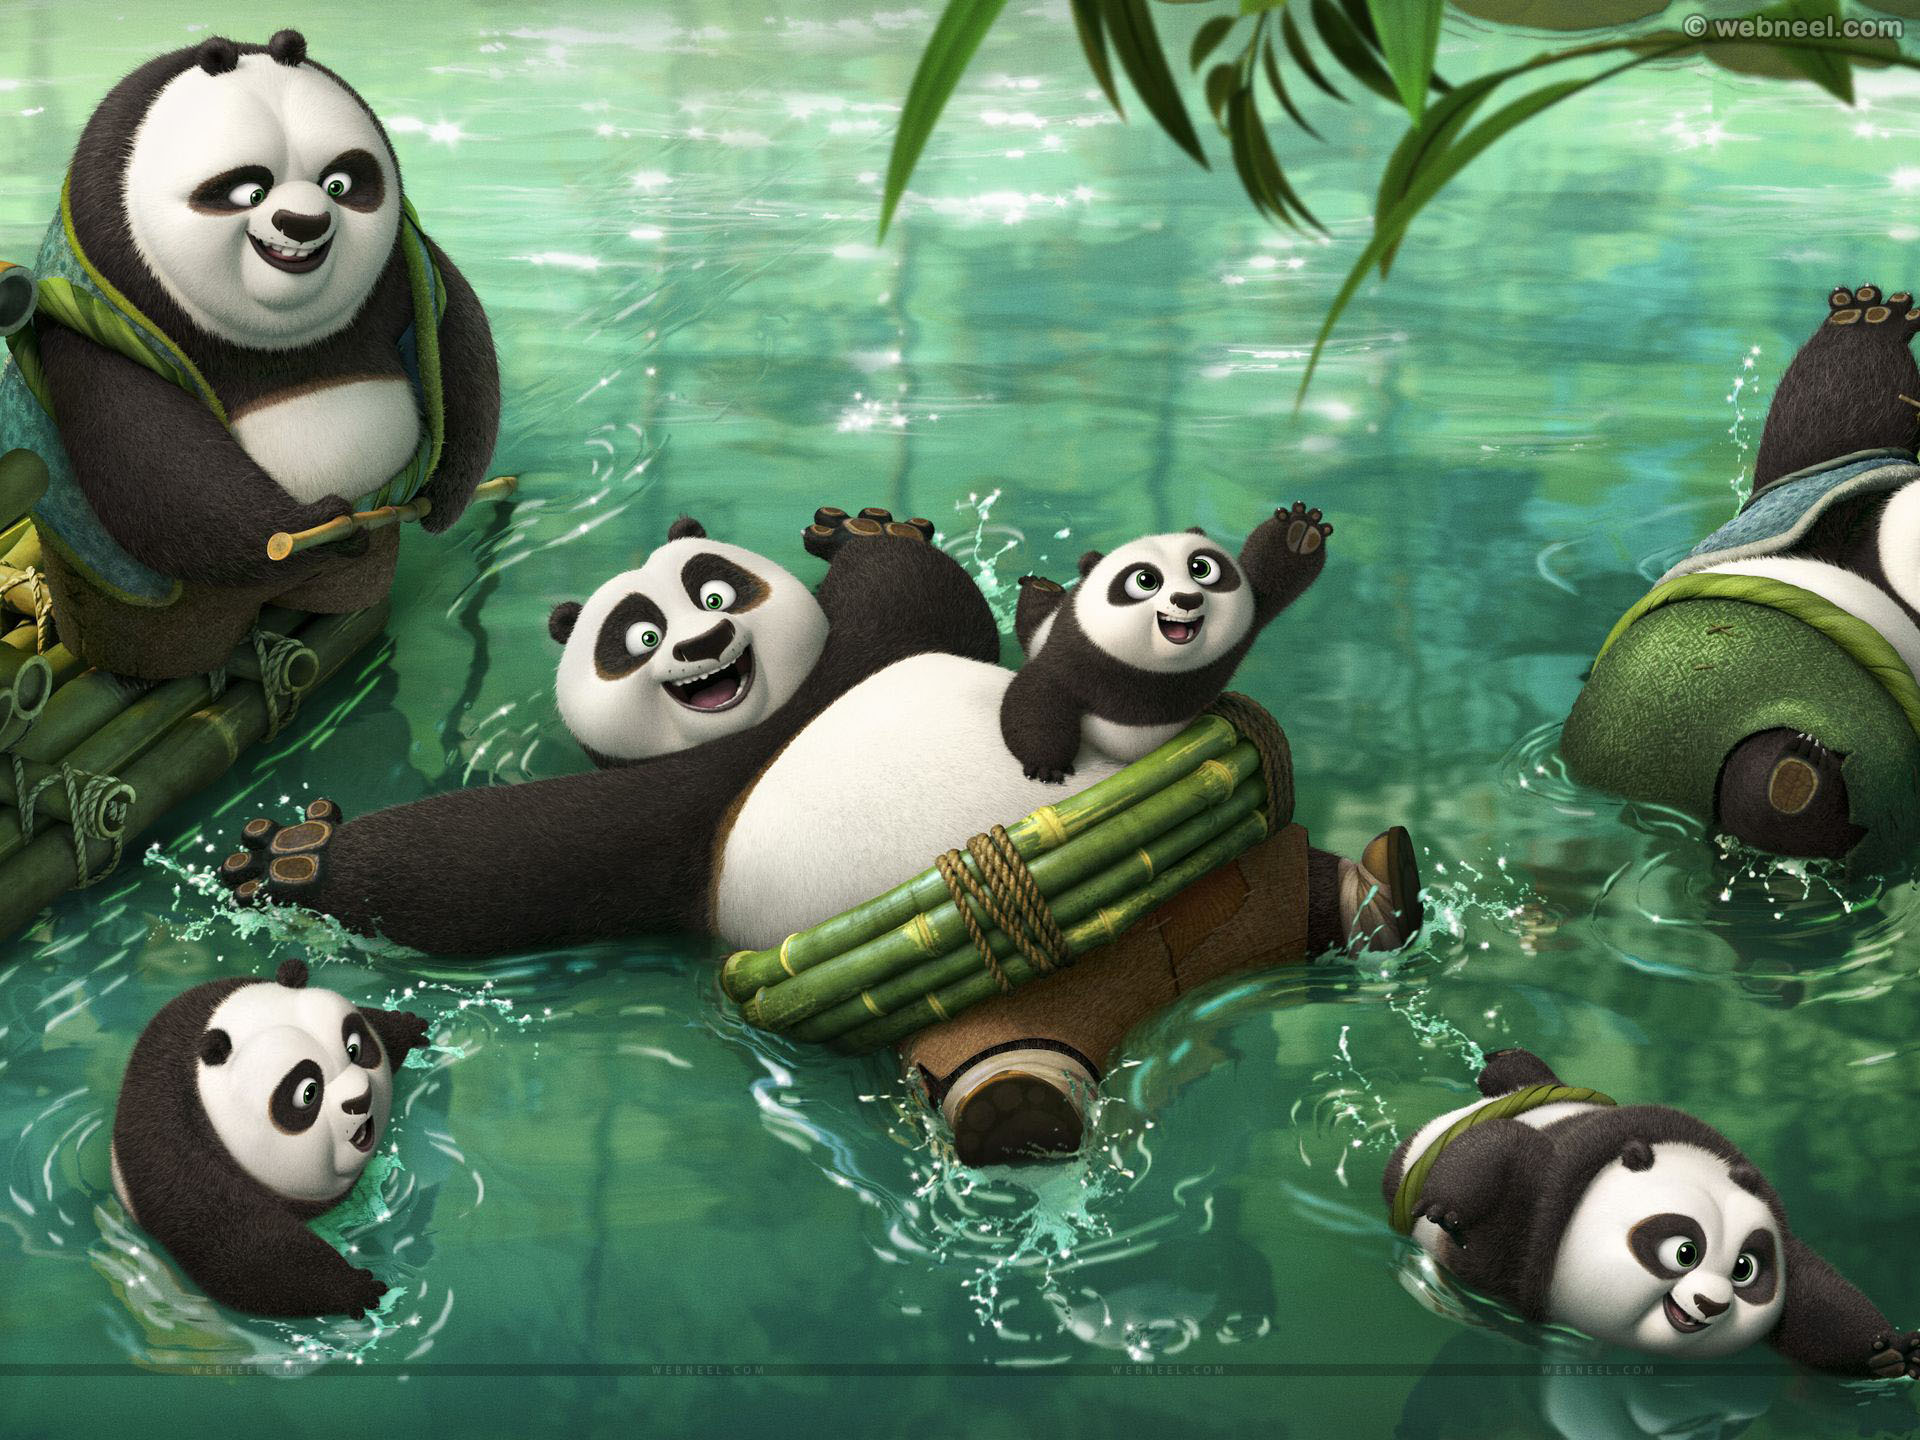 kung fu panda 3 animation movie list 2016 wallpaper